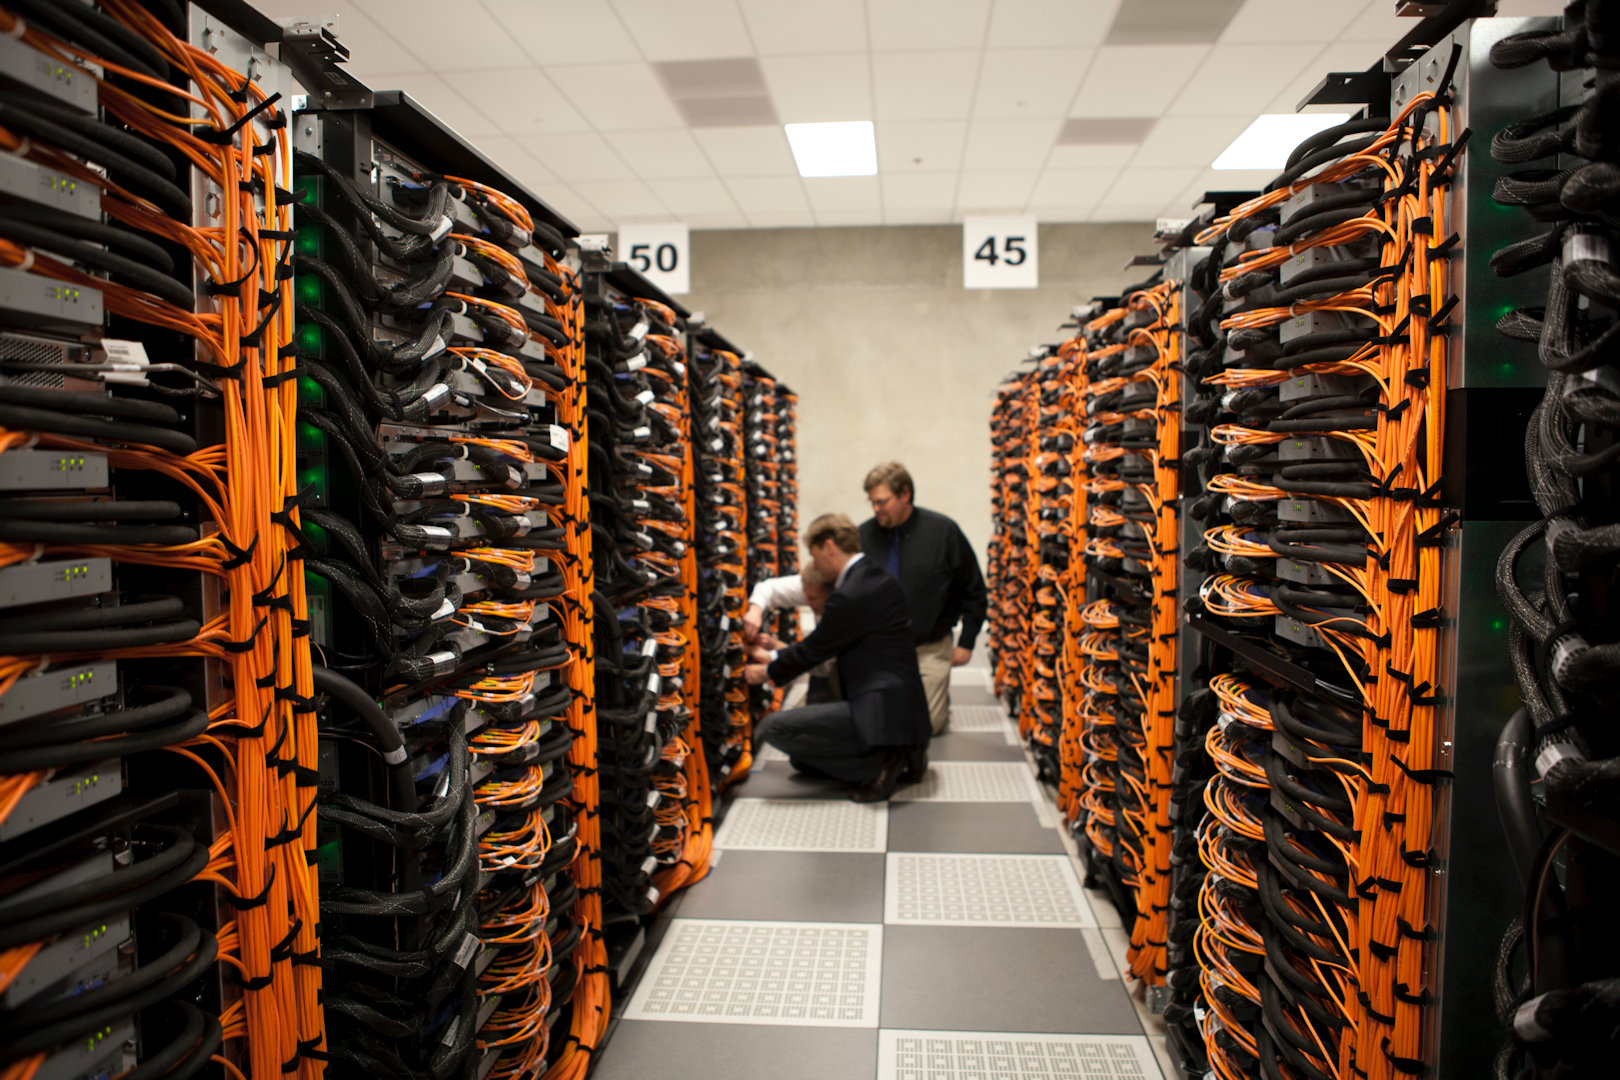 engineers working on structured data cables within data centre